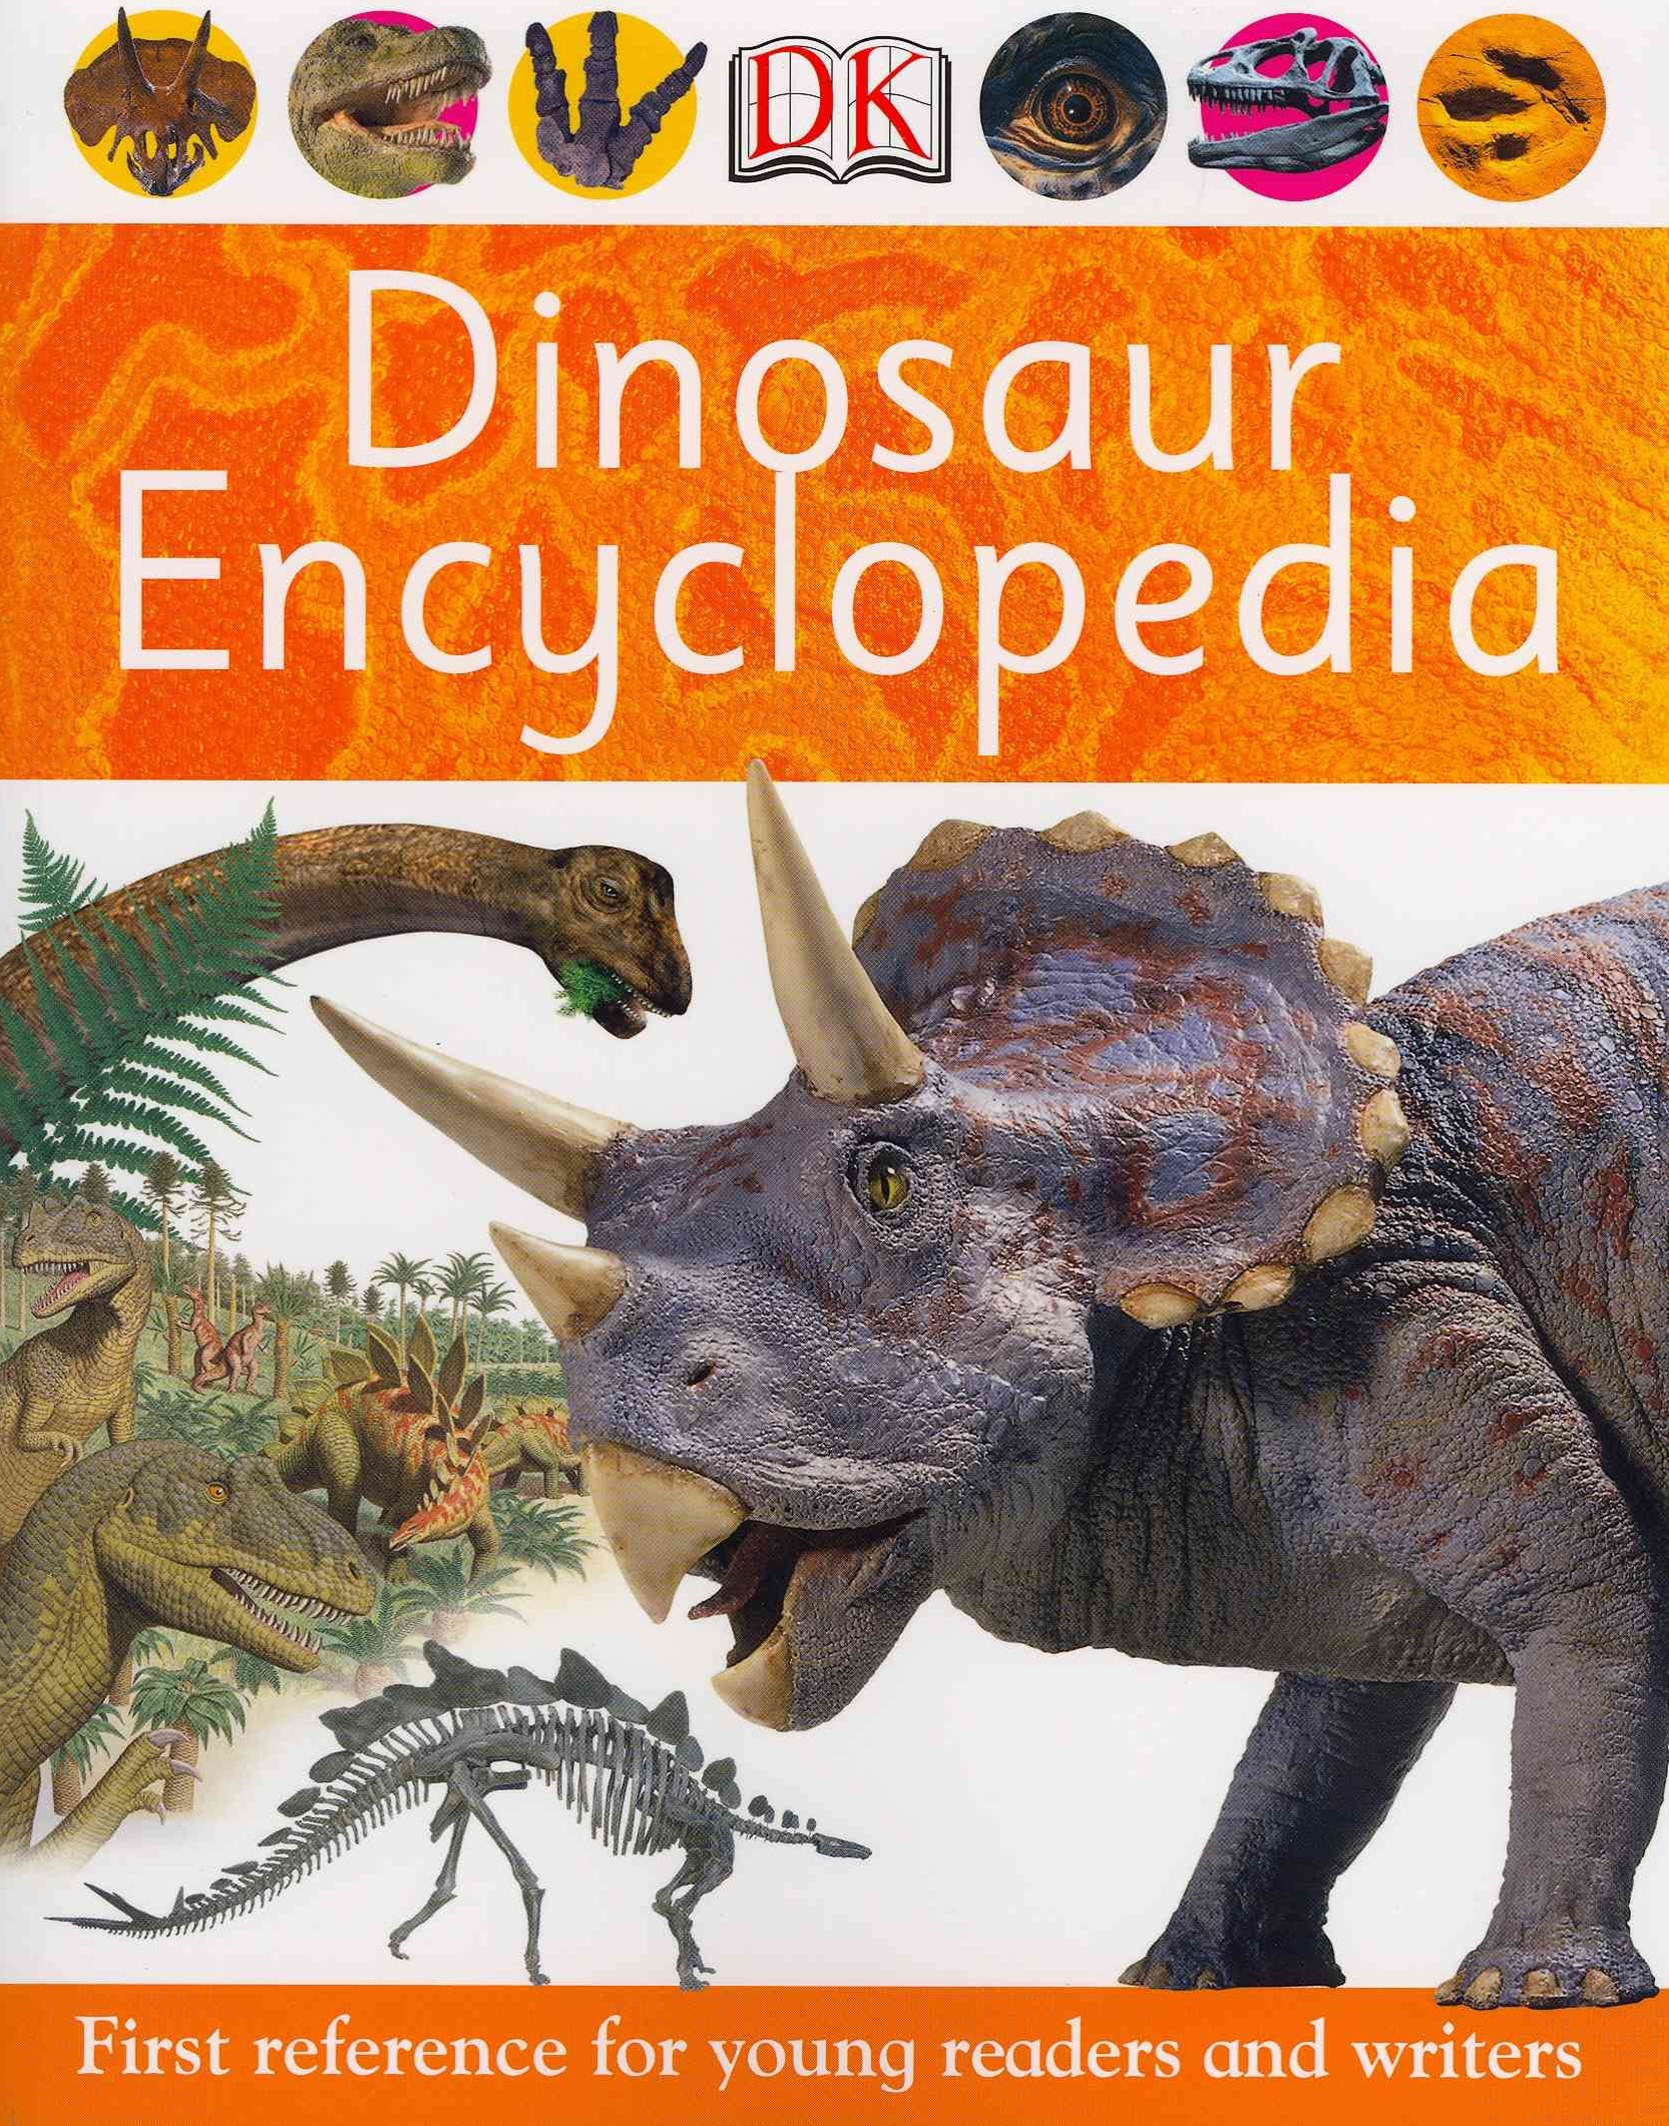 Dinosaur Encyclopedia: First Reference For Young Readers AndWriters